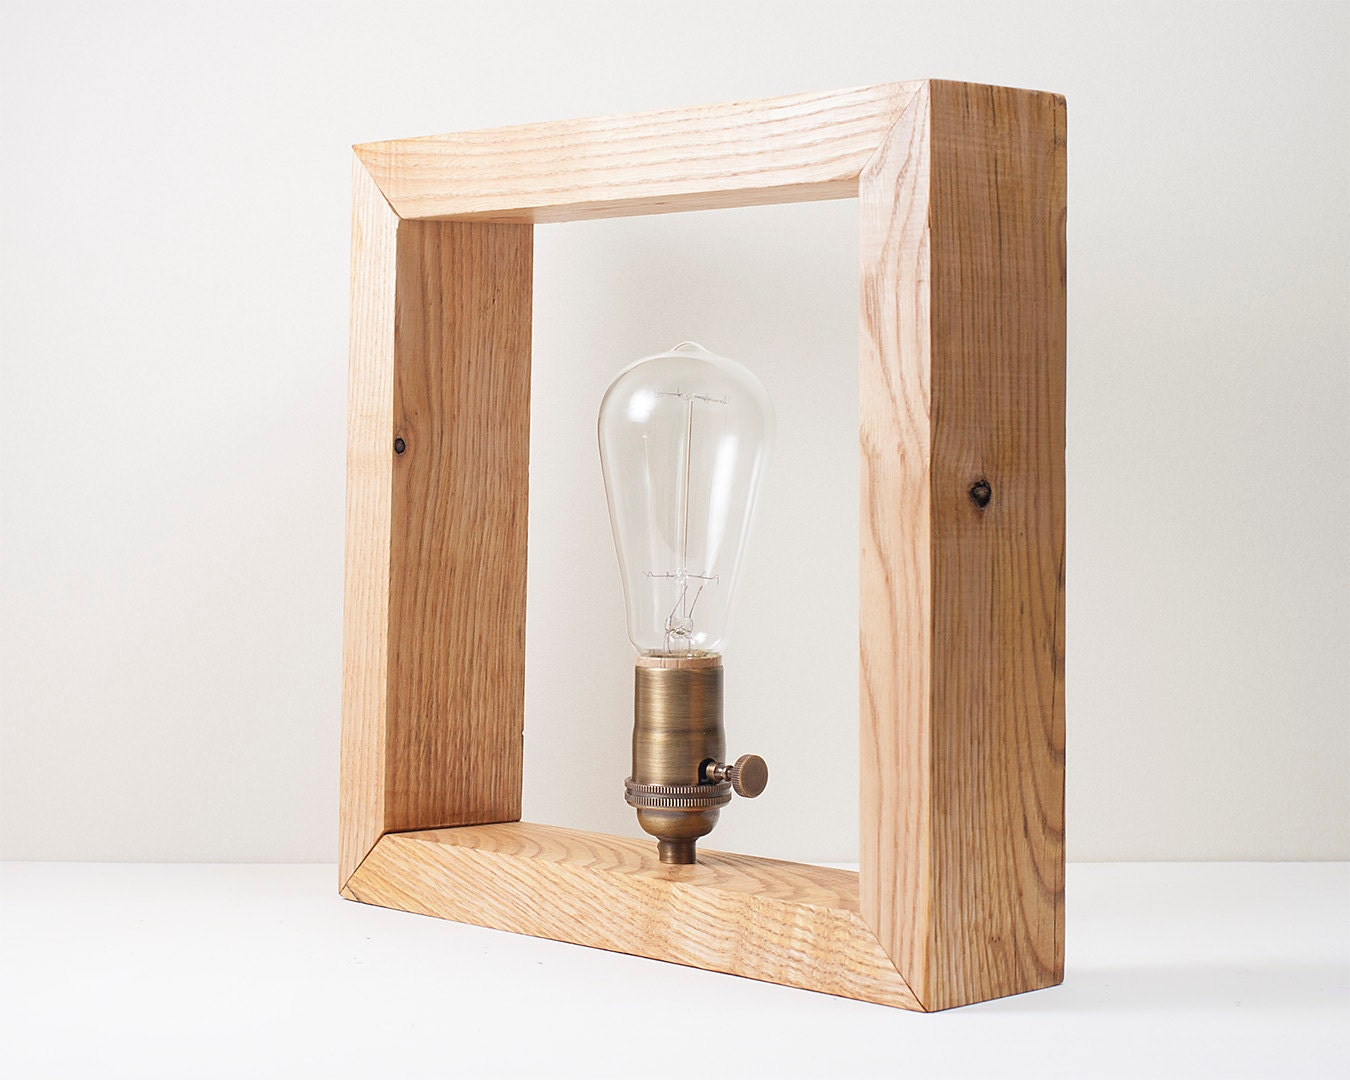 Reclaimed wood lamp vintage bulb edison box reclaimed - Lamparas de madera ...